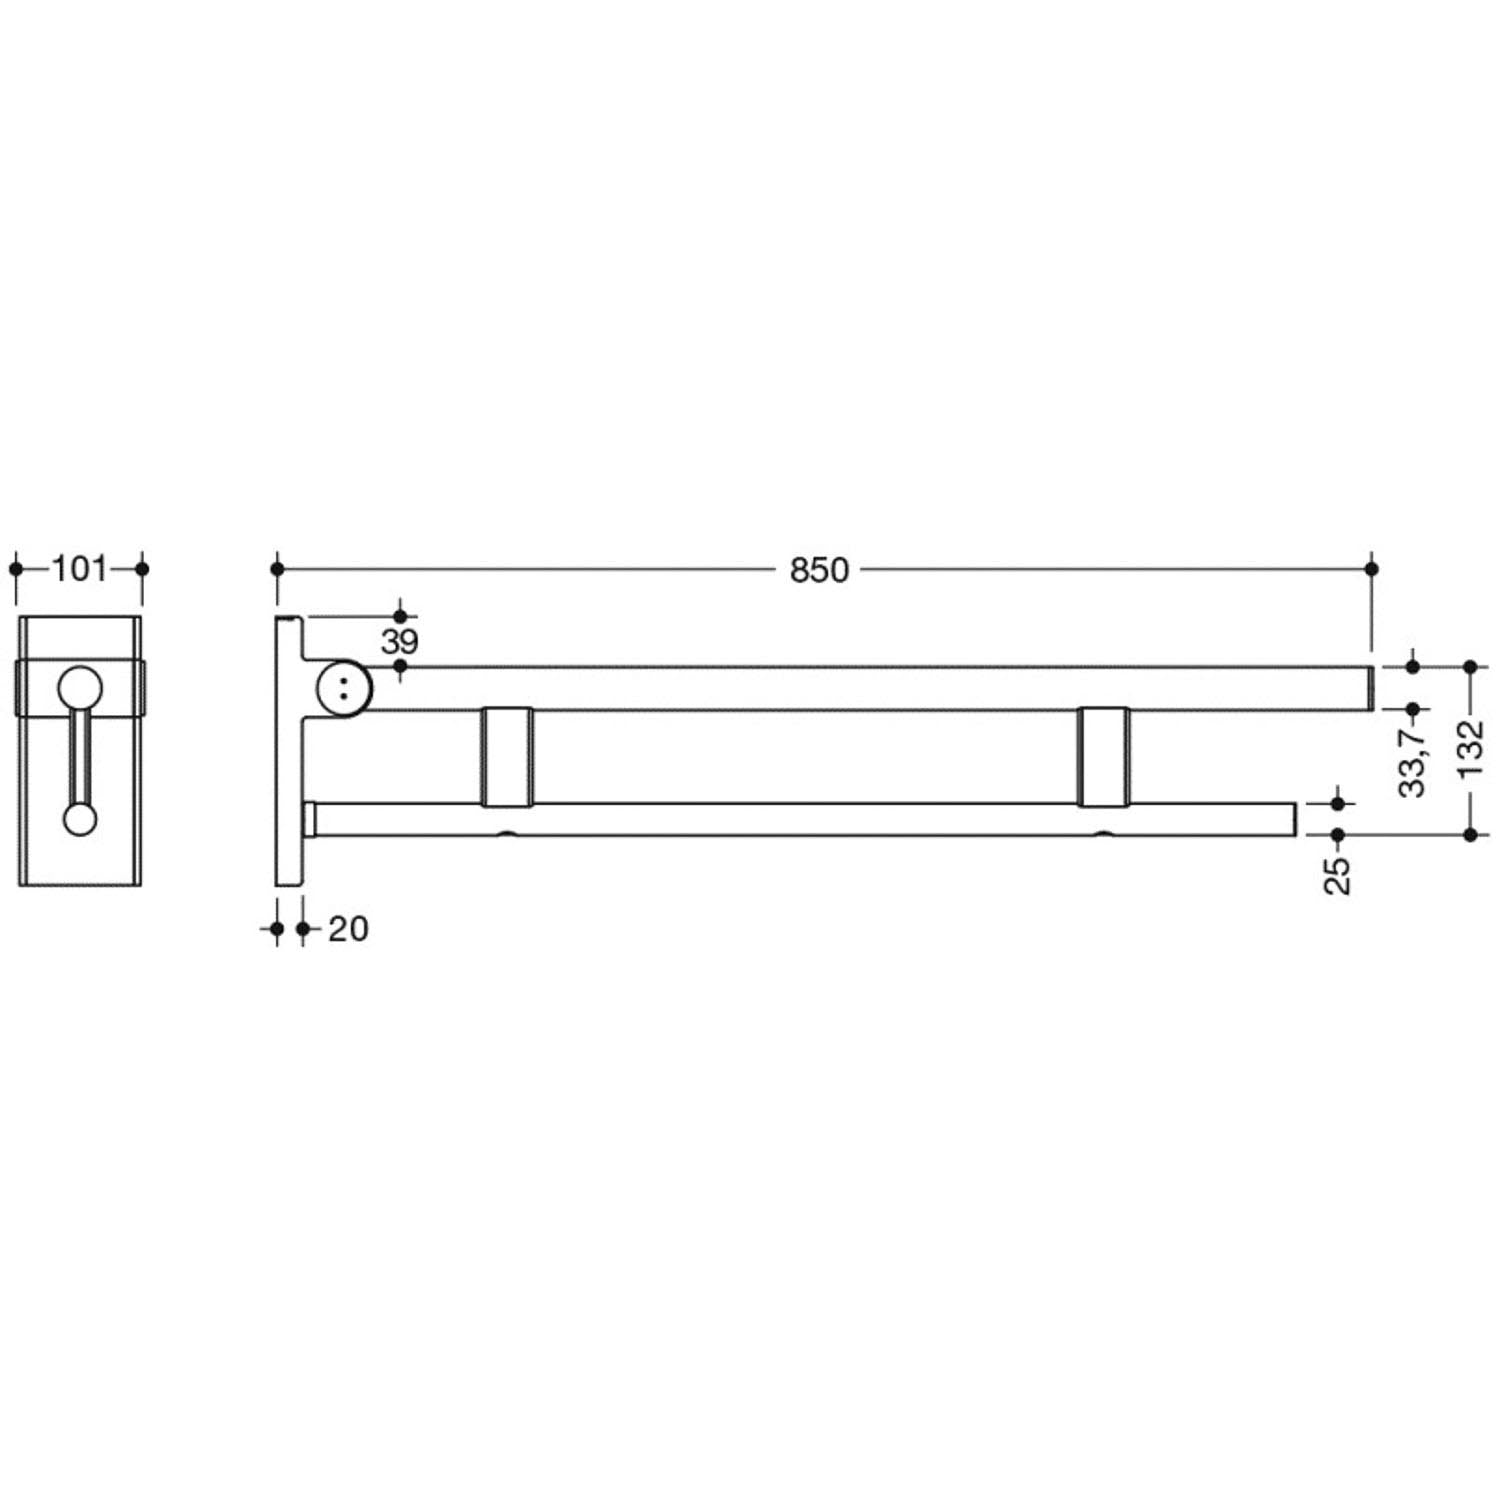 850mm Freestyle Removable Hinged Grab Rail with a satin steel finish dimensional drawing